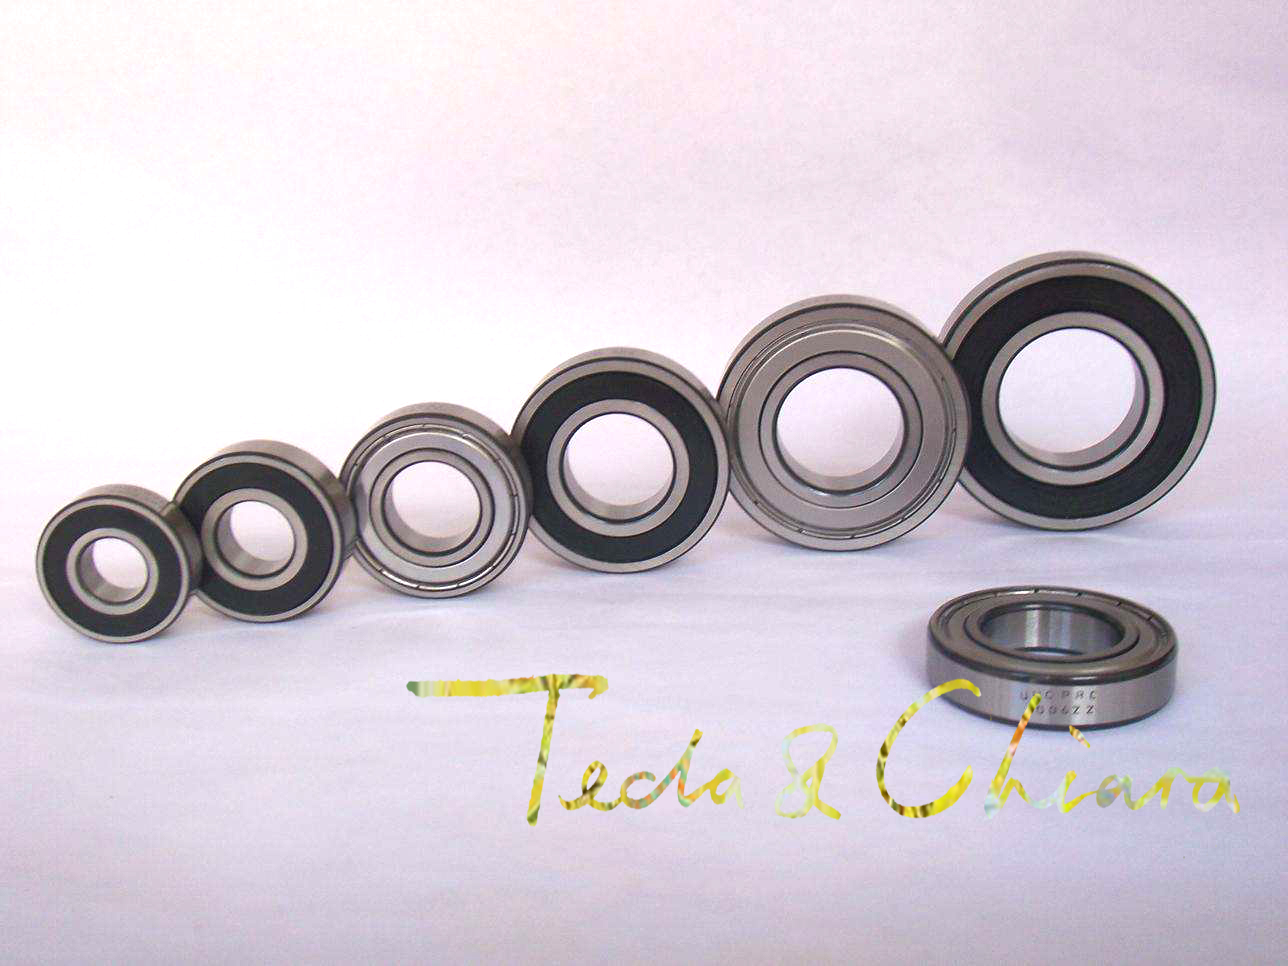 6701 6701ZZ 6701RS 6701-2Z 6701Z 6701-2RS ZZ RS RZ 2RZ Deep Groove Ball Bearings 12 x 18 x 4mm High Quality 6704 6704zz 6704rs 6704 2z 6704z 6704 2rs zz rs rz 2rz deep groove ball bearings 20 x 27 x 4mm high quality